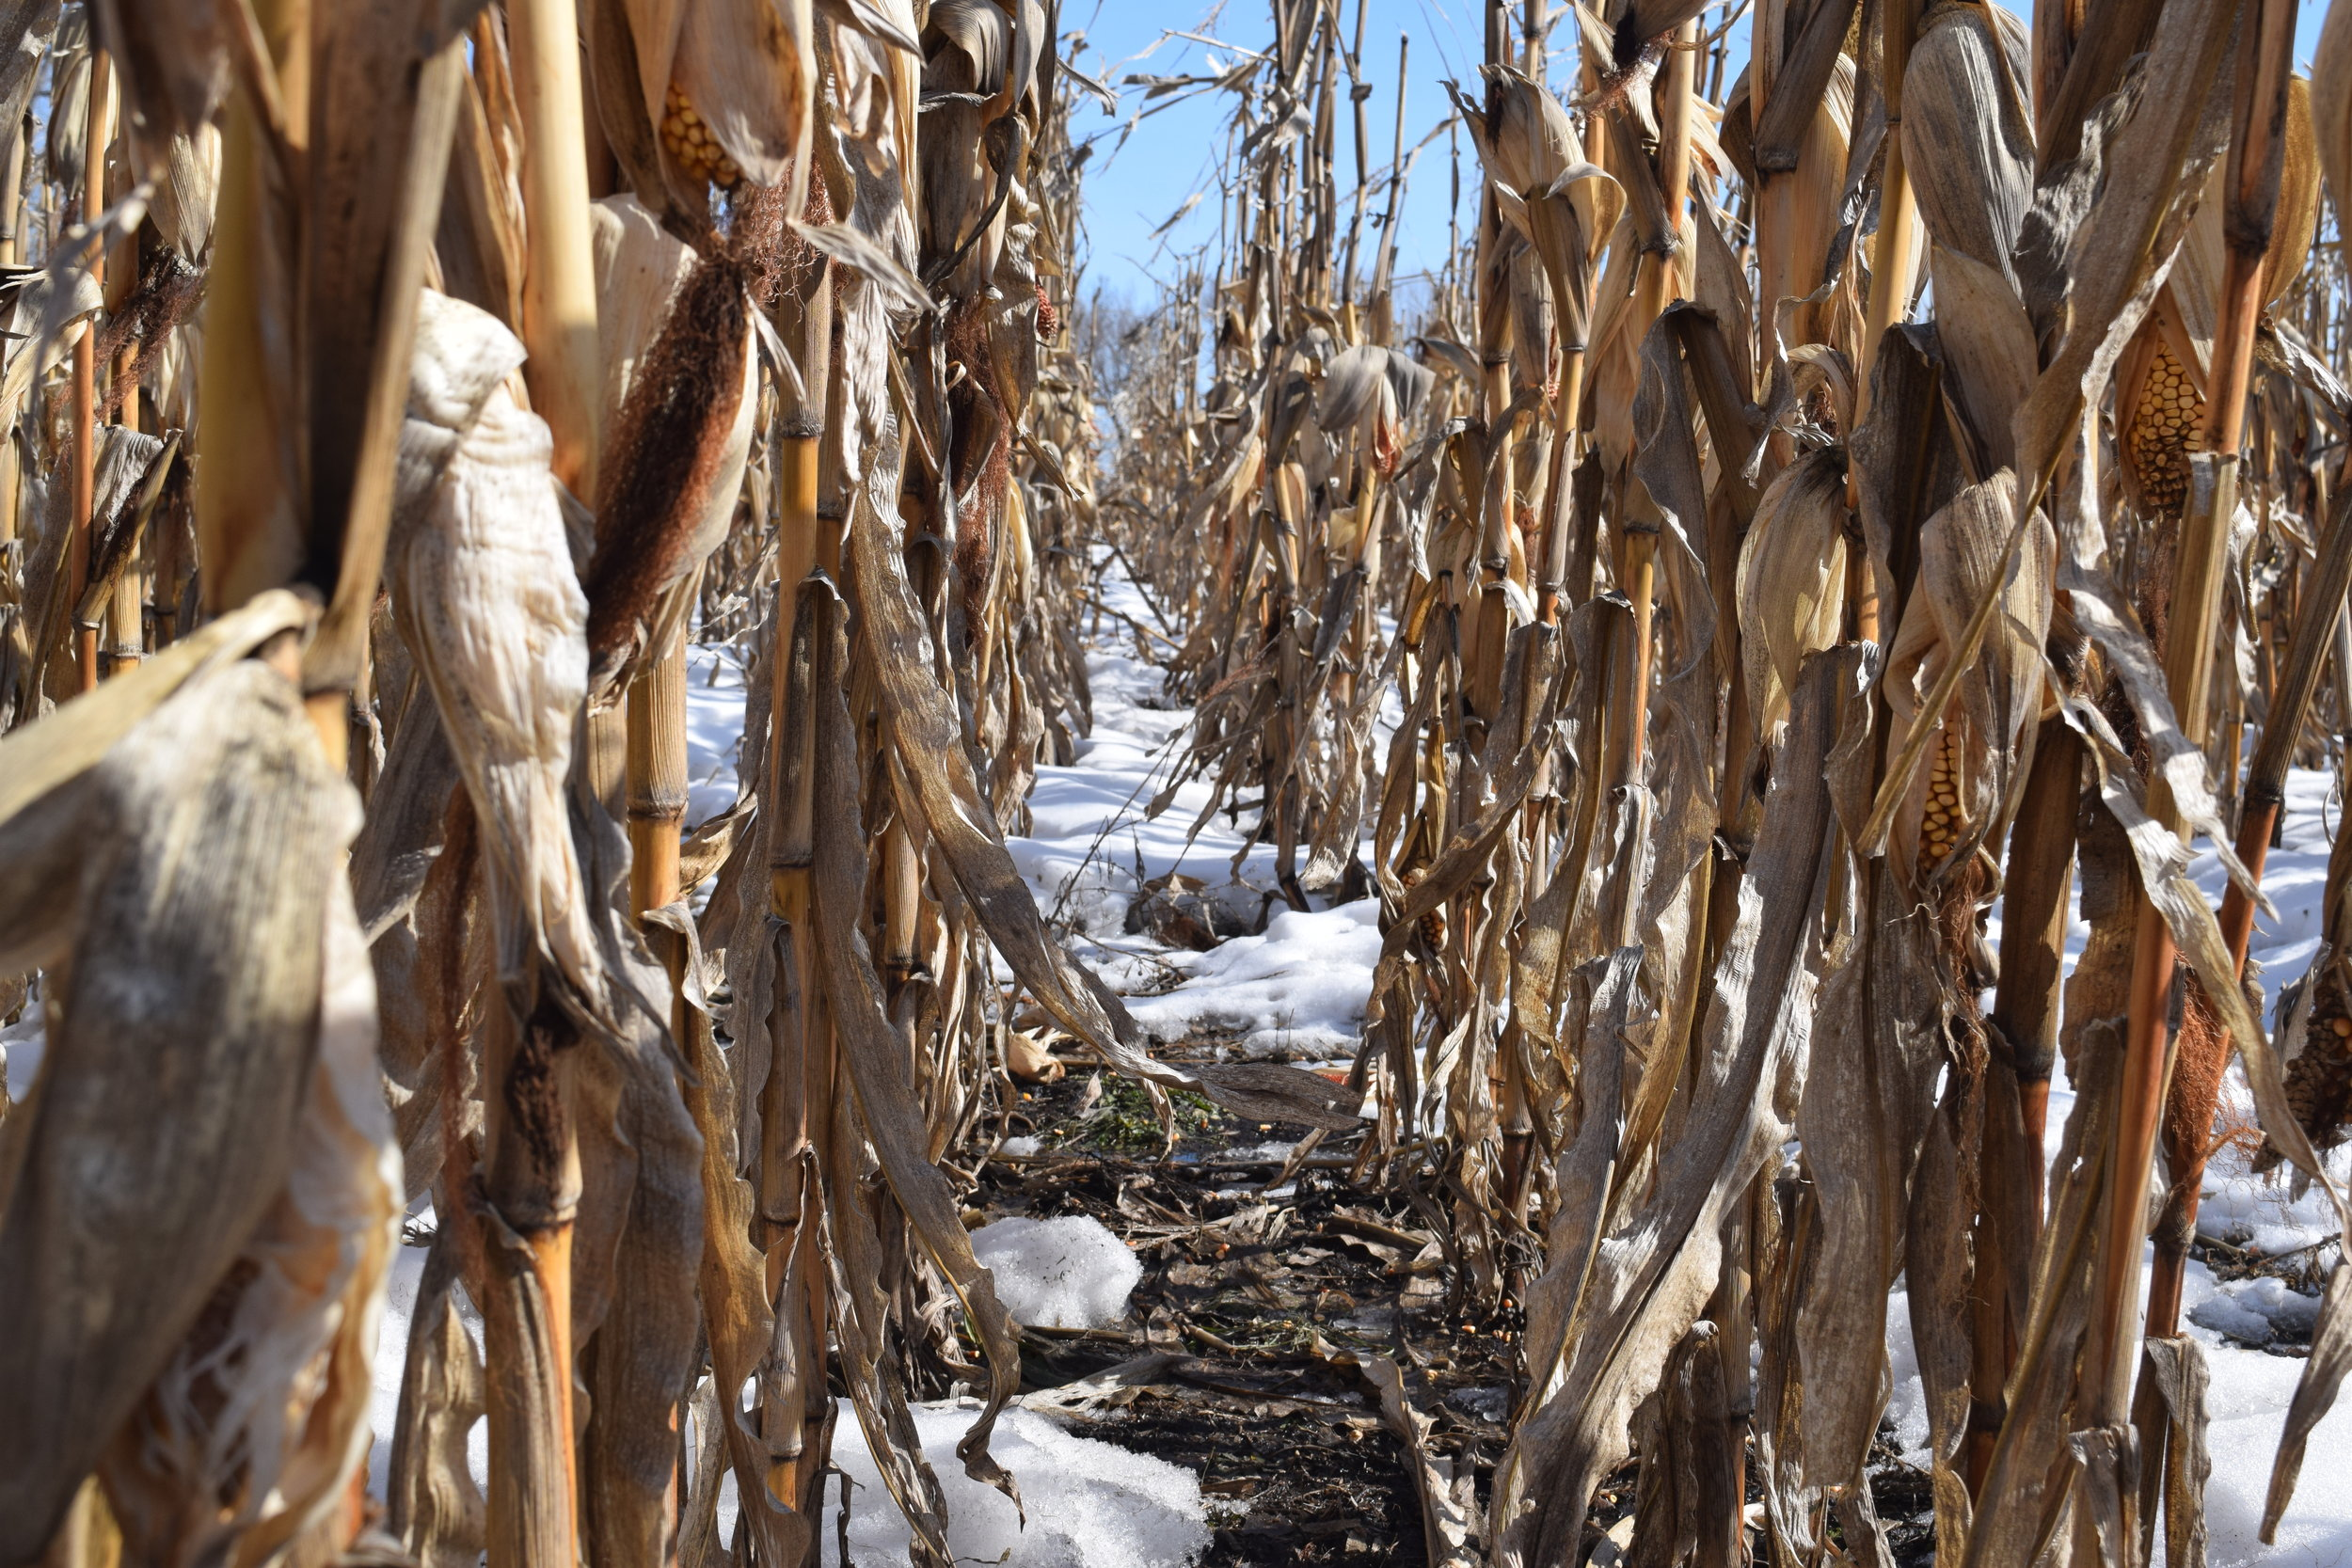 Searching for sheds in standing corn.